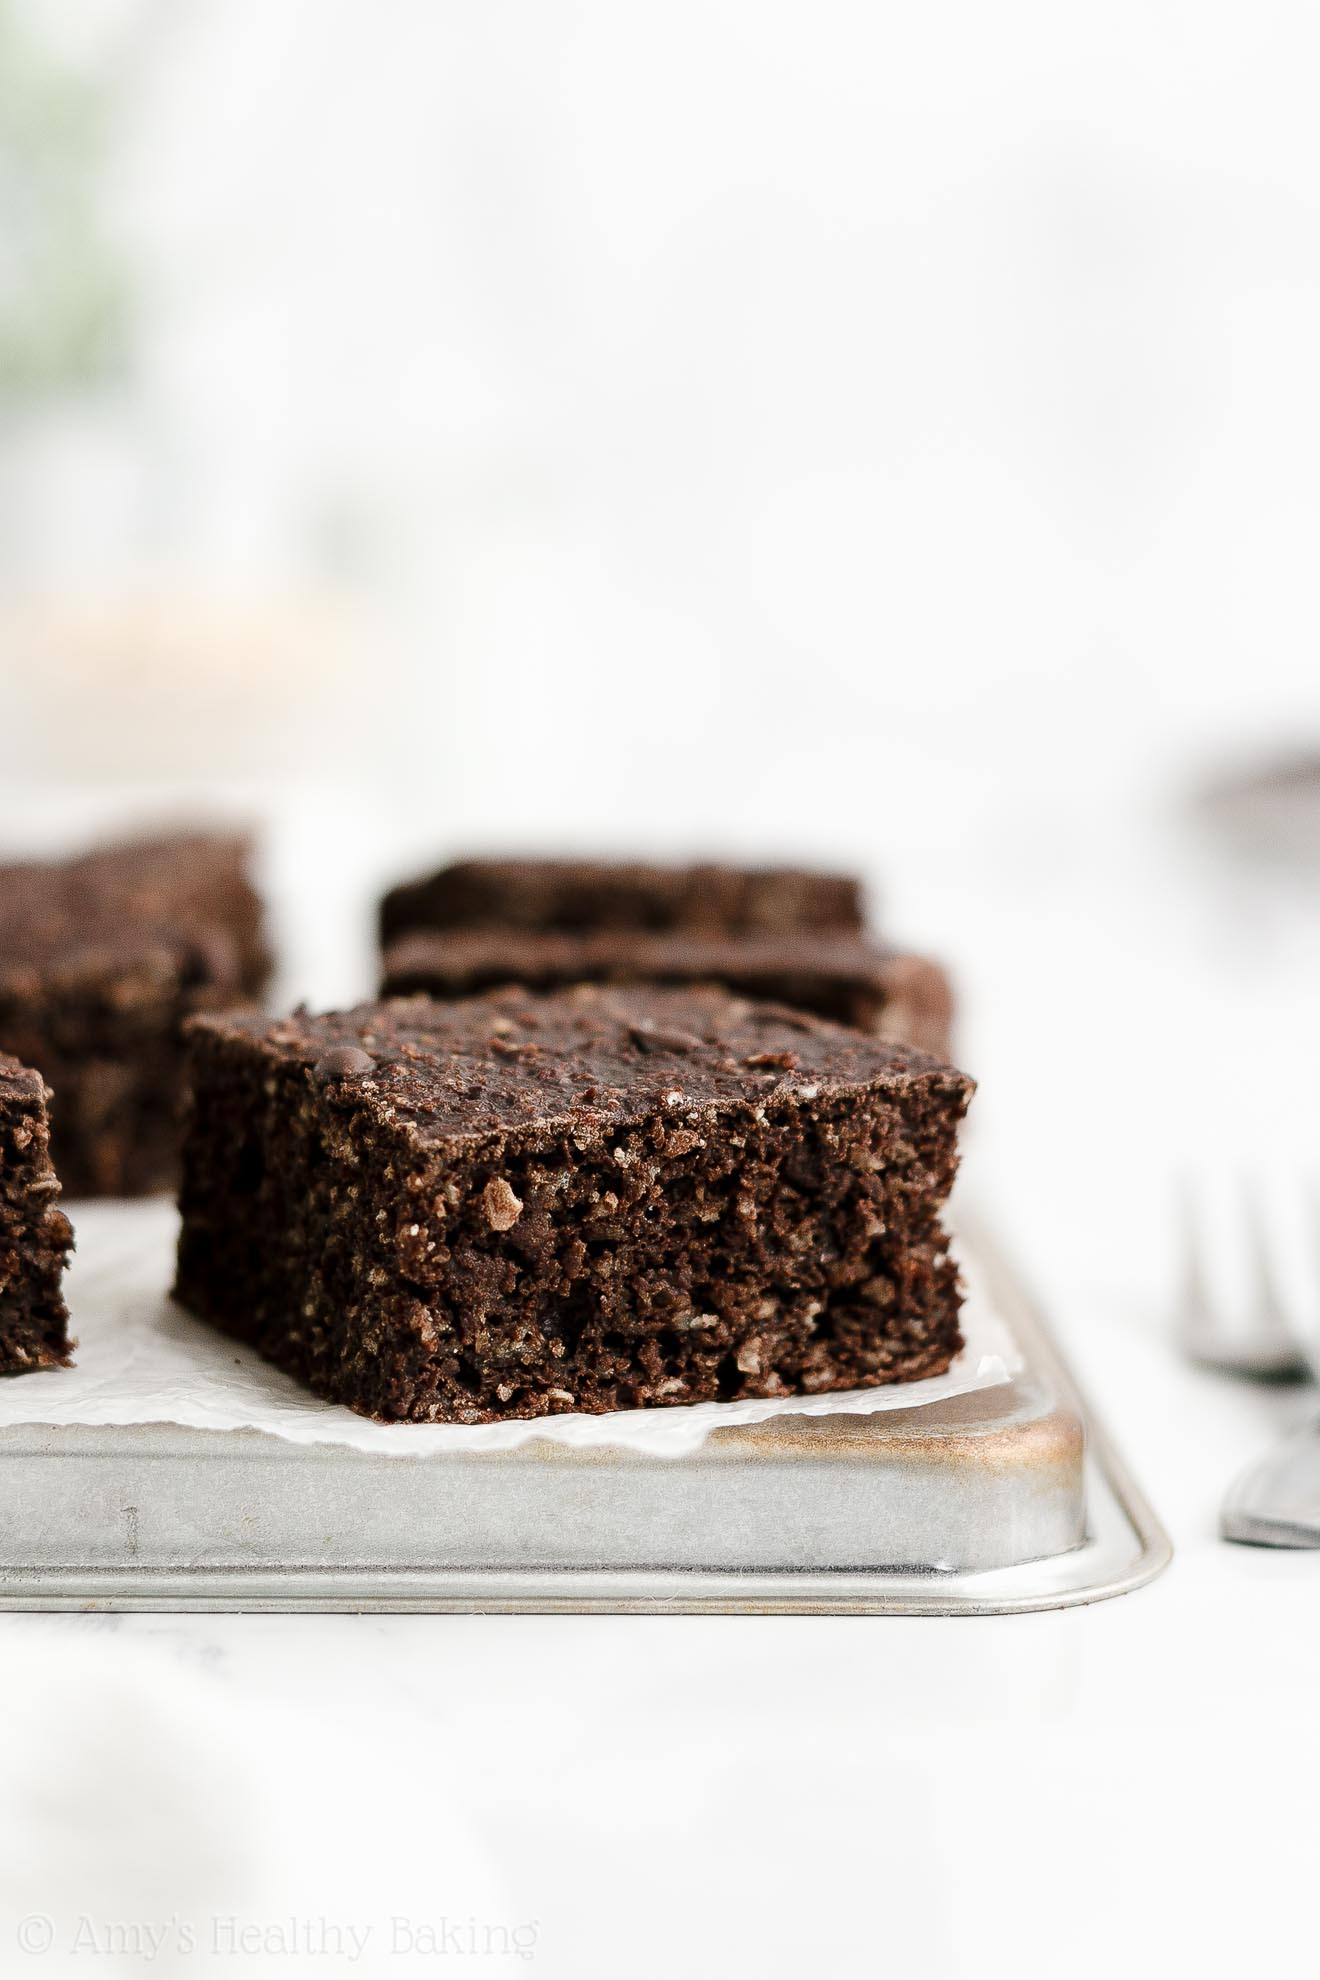 ULTIMATE Healthy Gluten Free Low Fat Greek Yogurt Chocolate Oatmeal Snack Cake